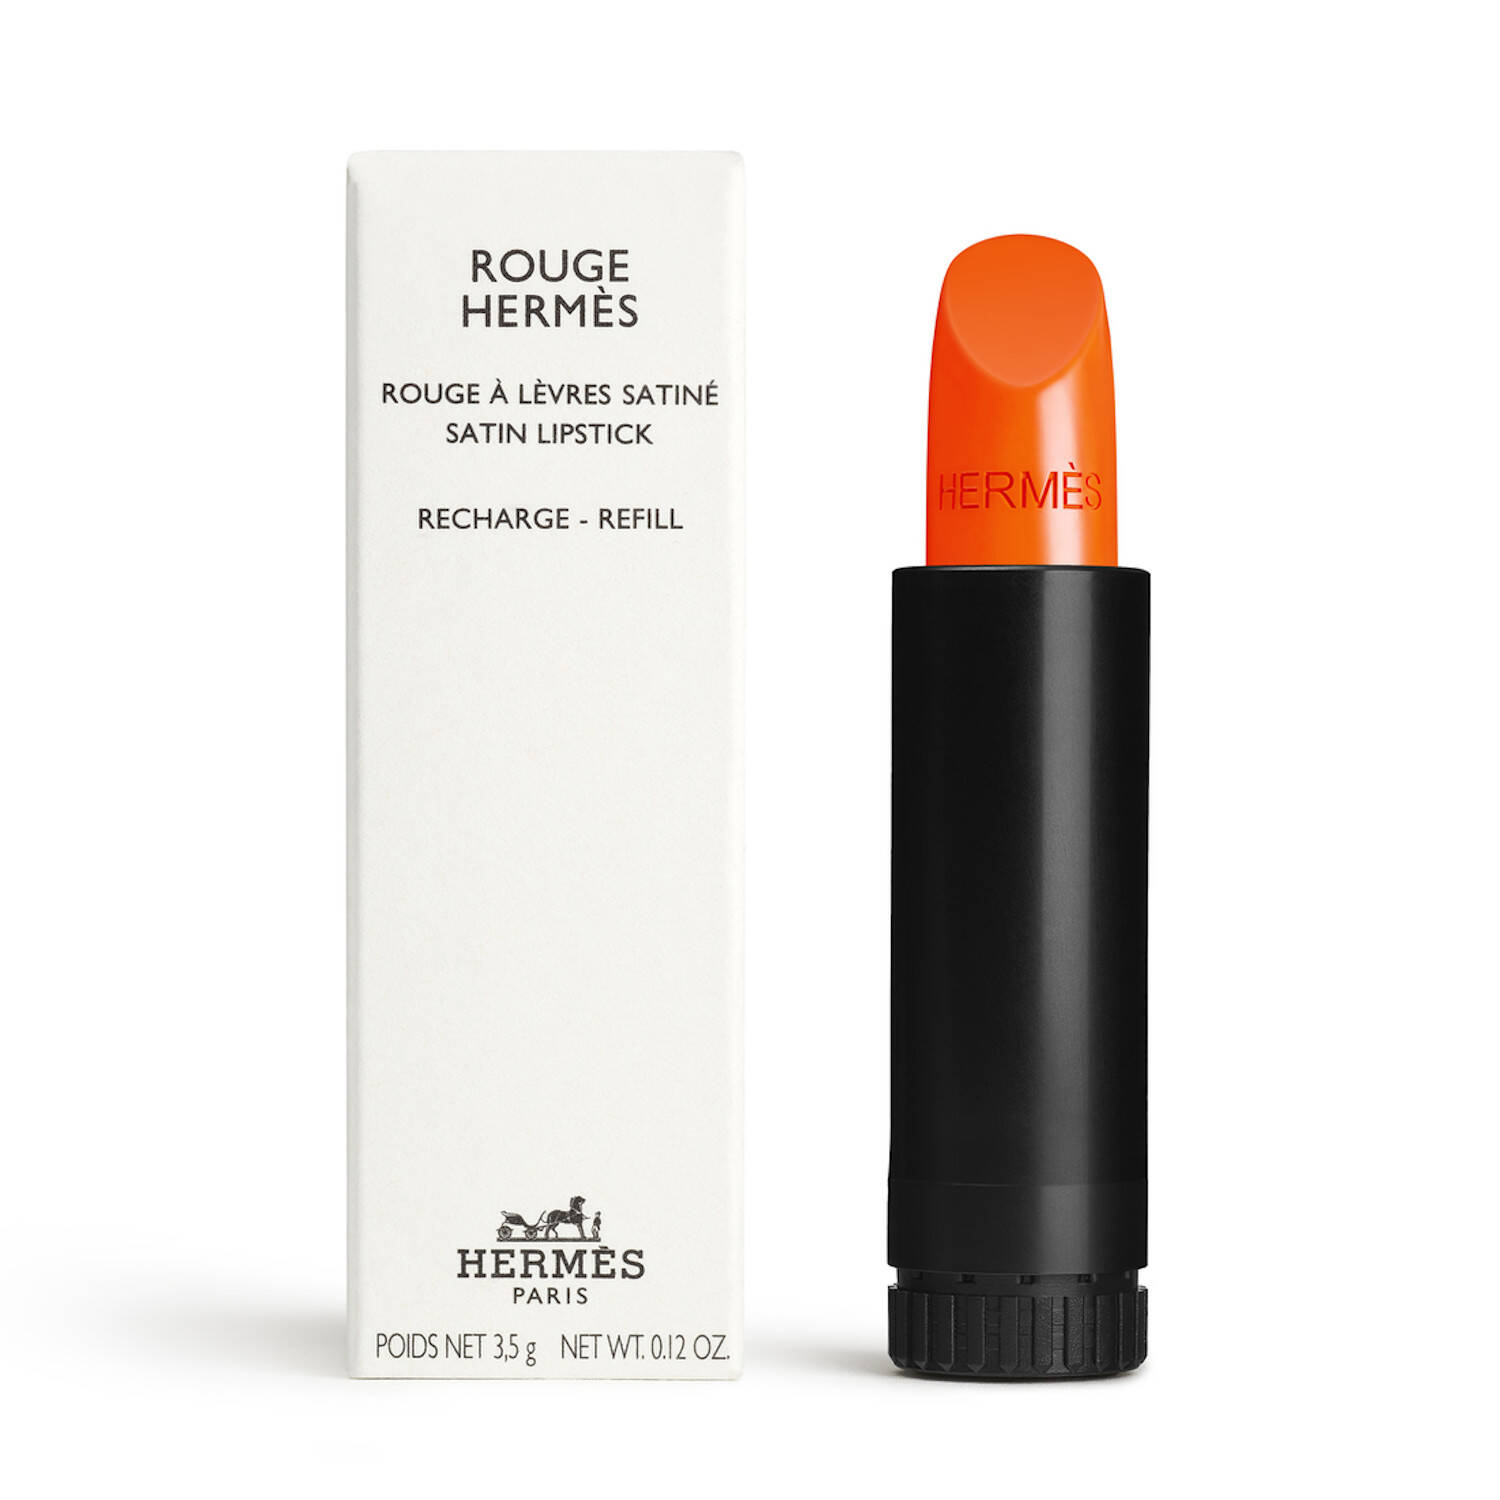 Rouge Hermès Satin, Nachfüllstift (33 Orange Boîte | 3,5 g) Make Up, Lippen, Lippenstift, MAKE-UP, LIPPEN von HERMÈS